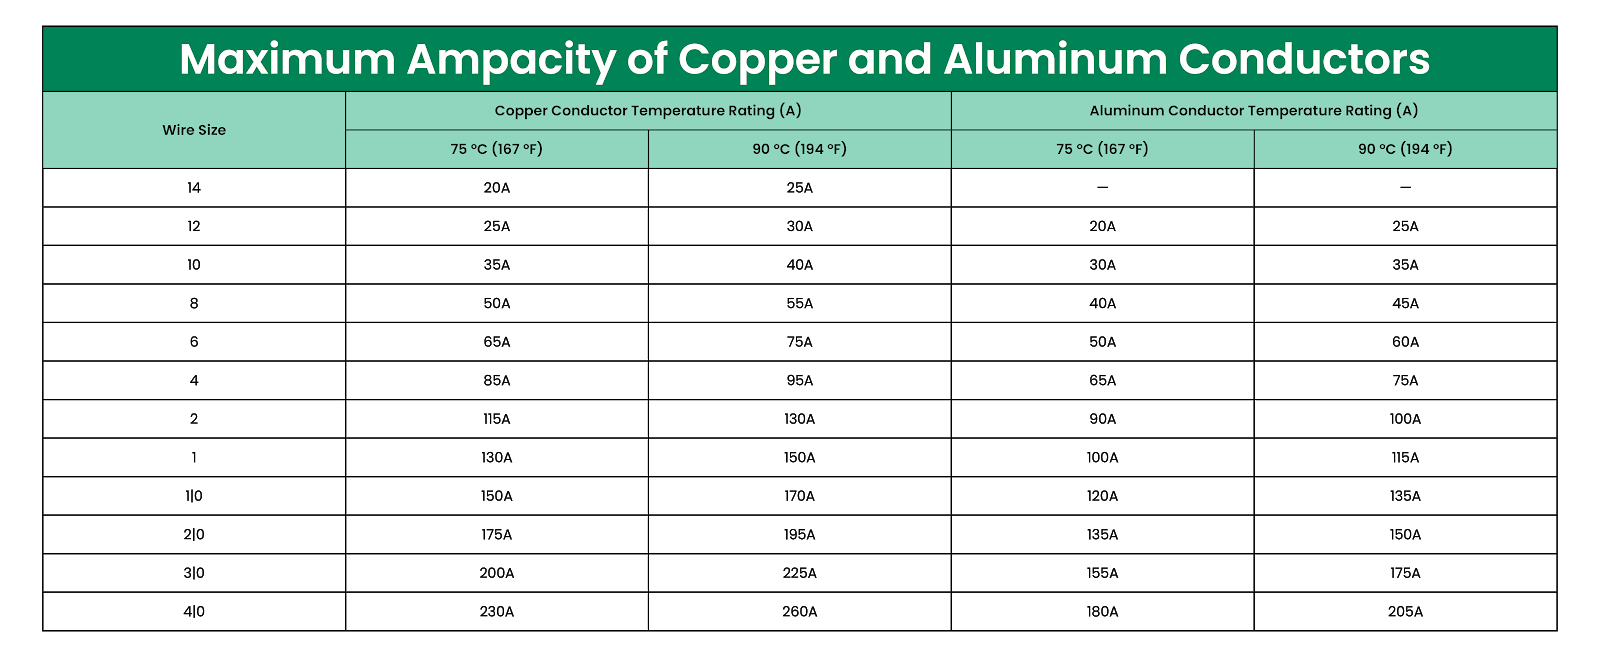 Ampacity Chart for Aluminum and Copper Conductors